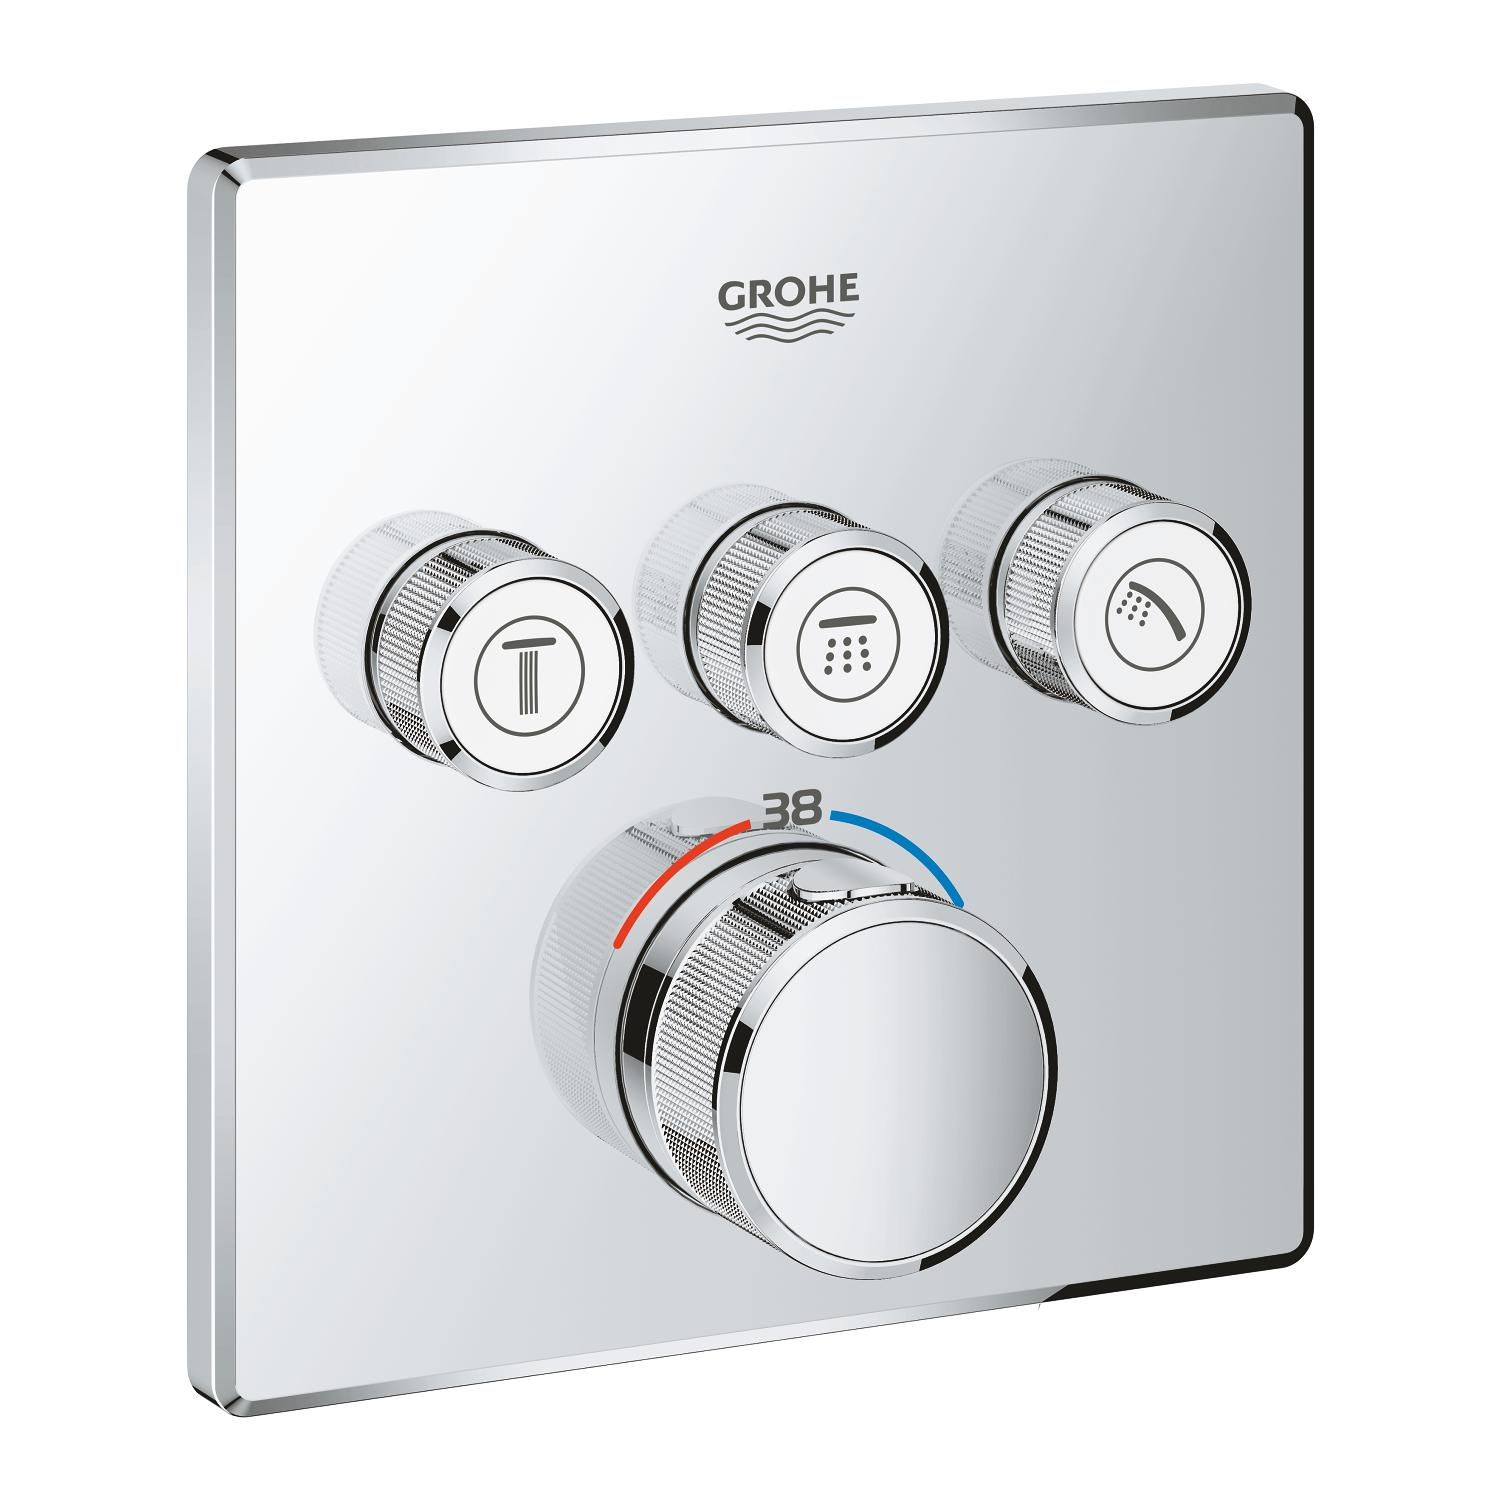 Grohtherm Smartcontrol opbouwdeel T m.3x omstel vierkant Grohe